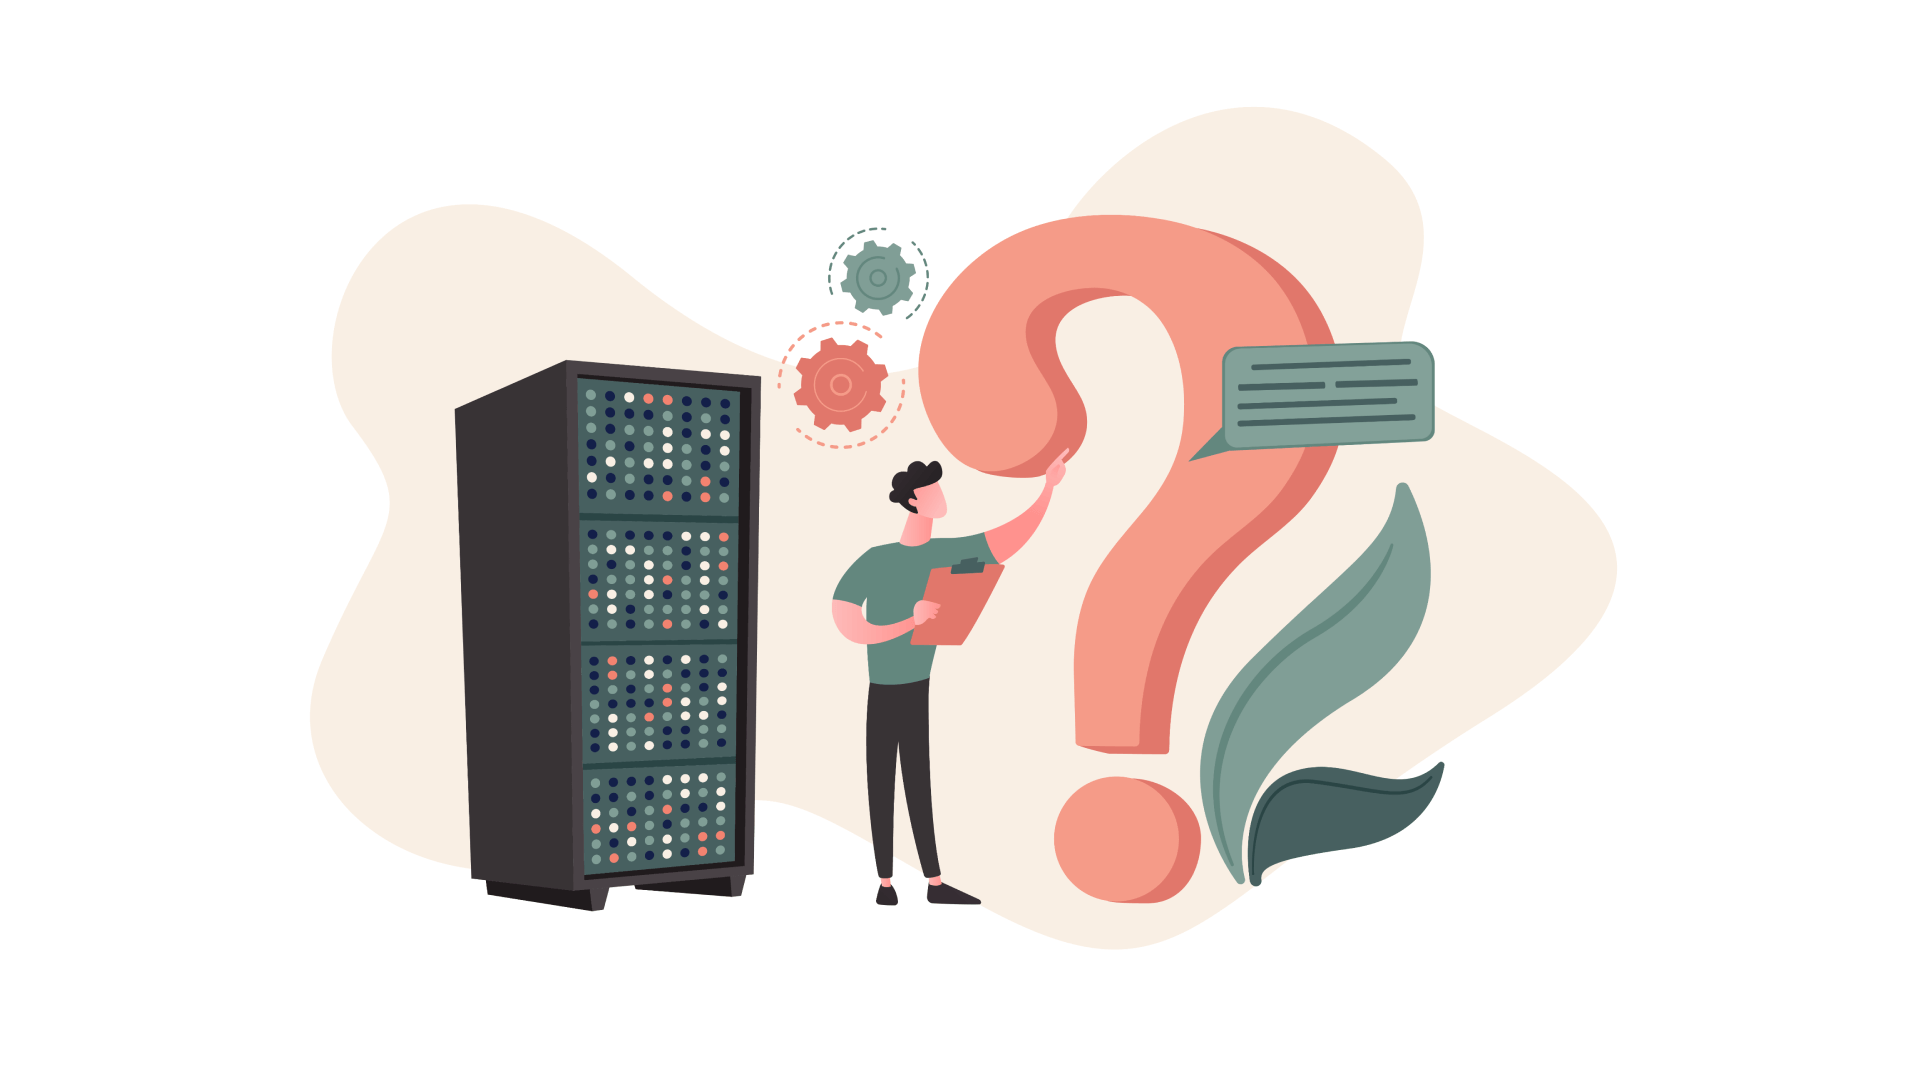 Defining a legacy internal system. What are its main characteristics and what makes it outdated?